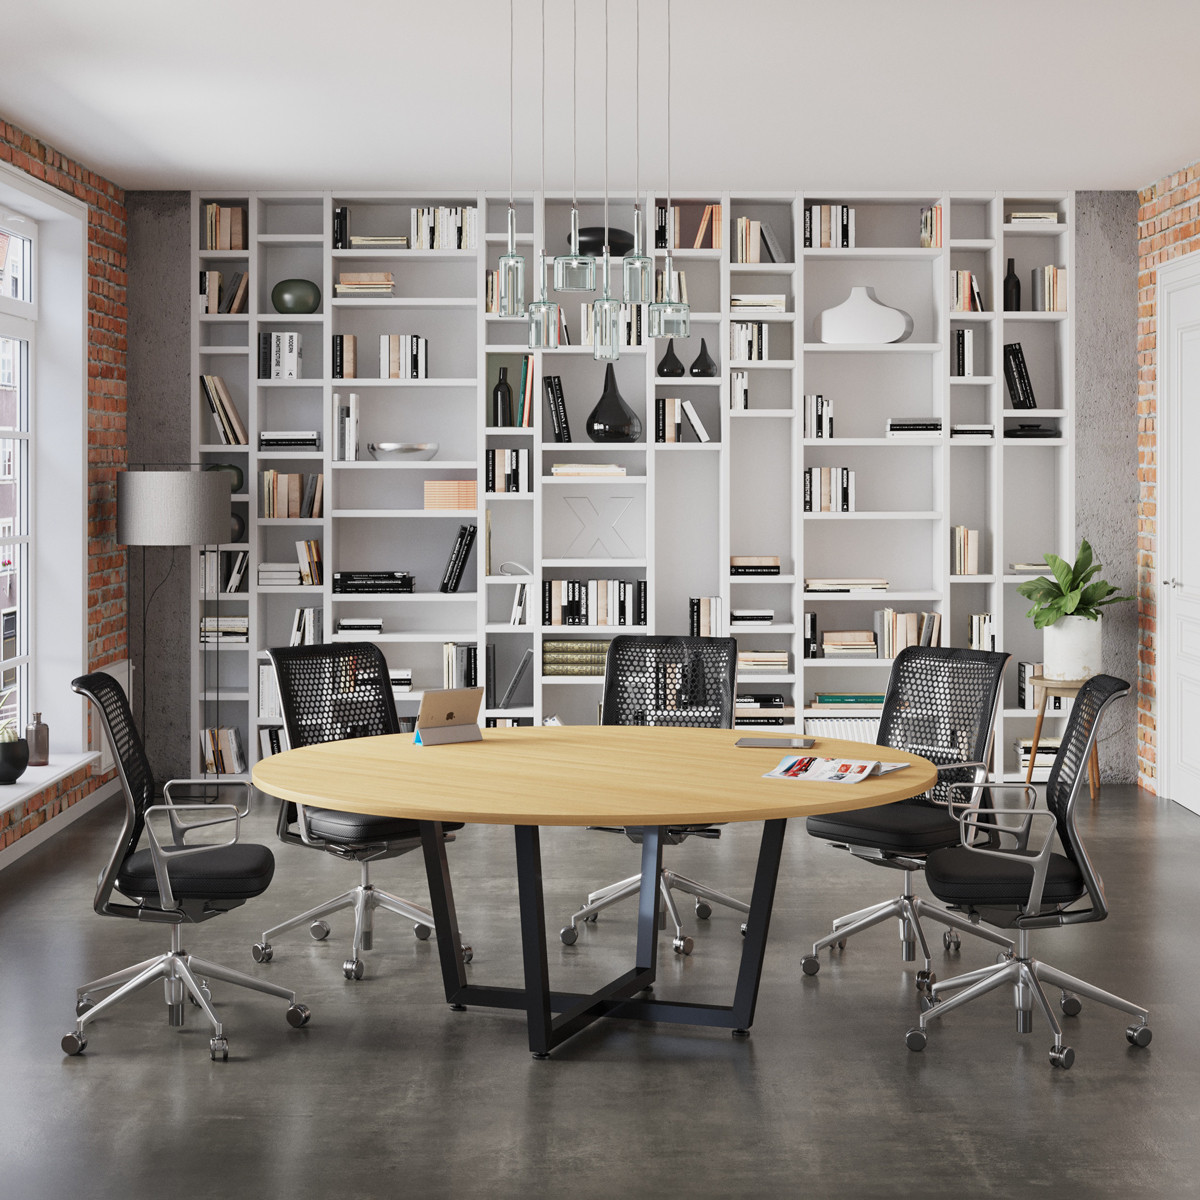 Conference table D-2000 Loft design image